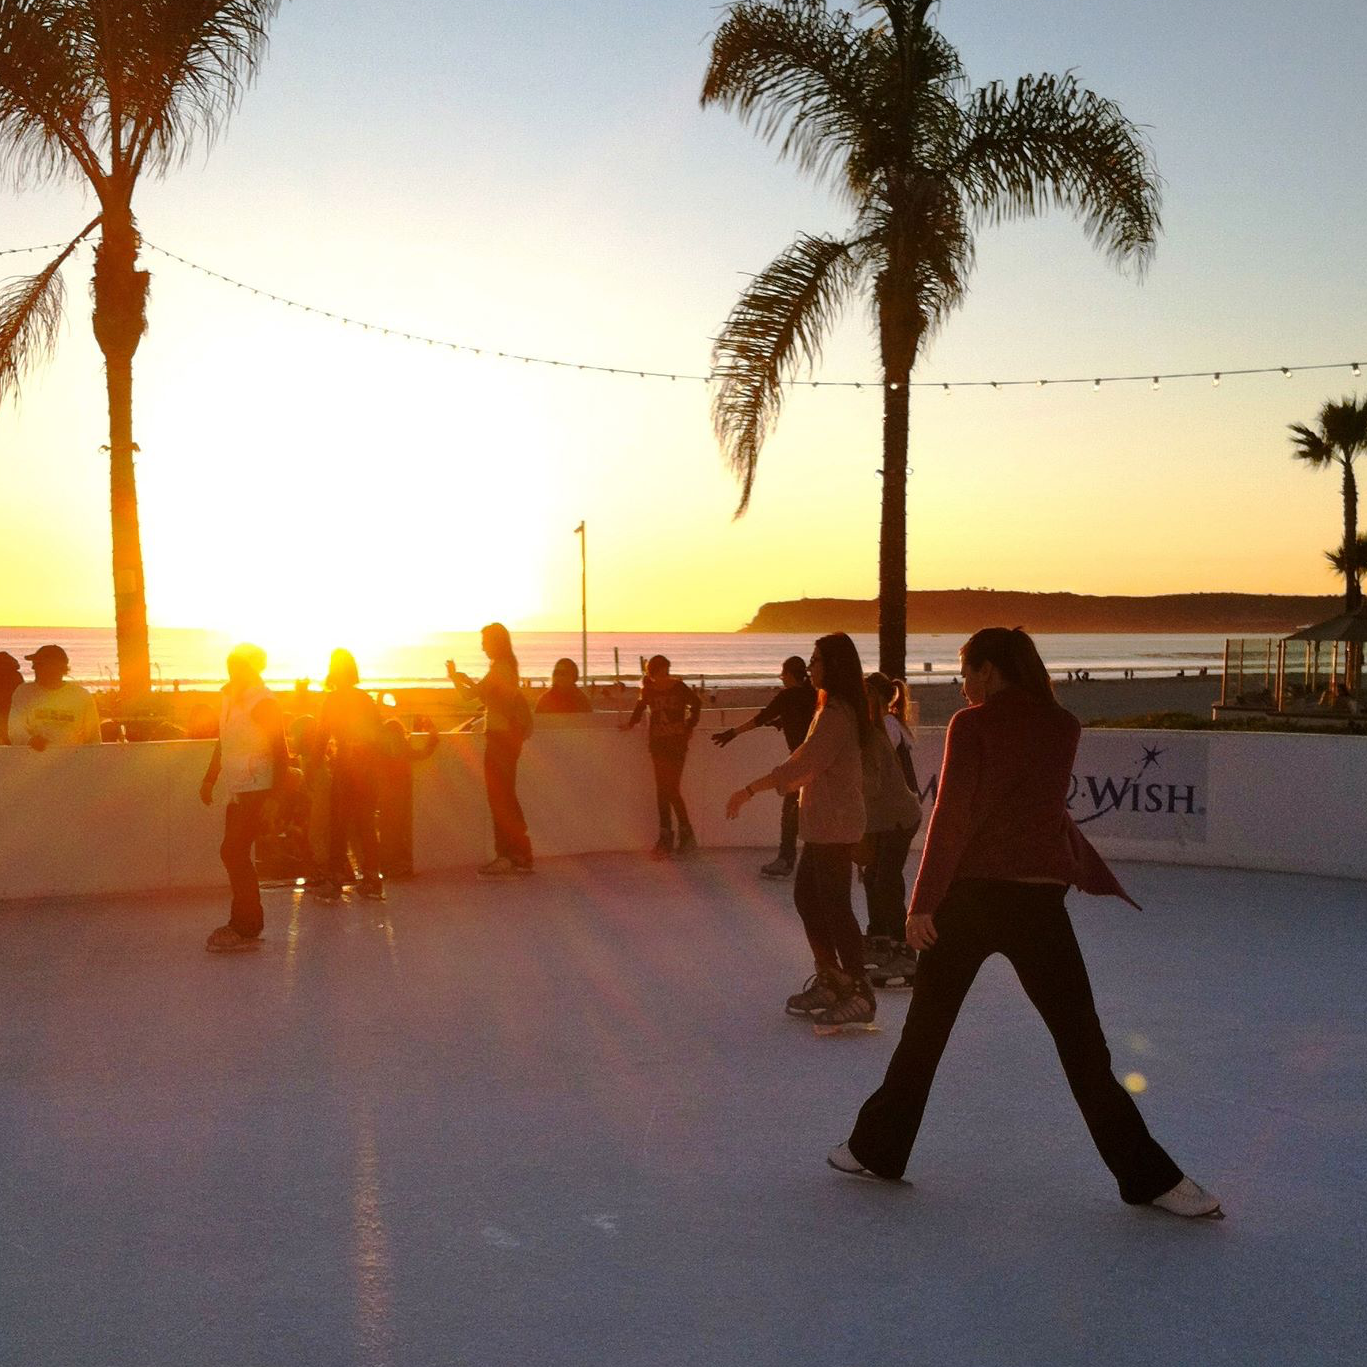 Skating on the beach: Only in San Diego!